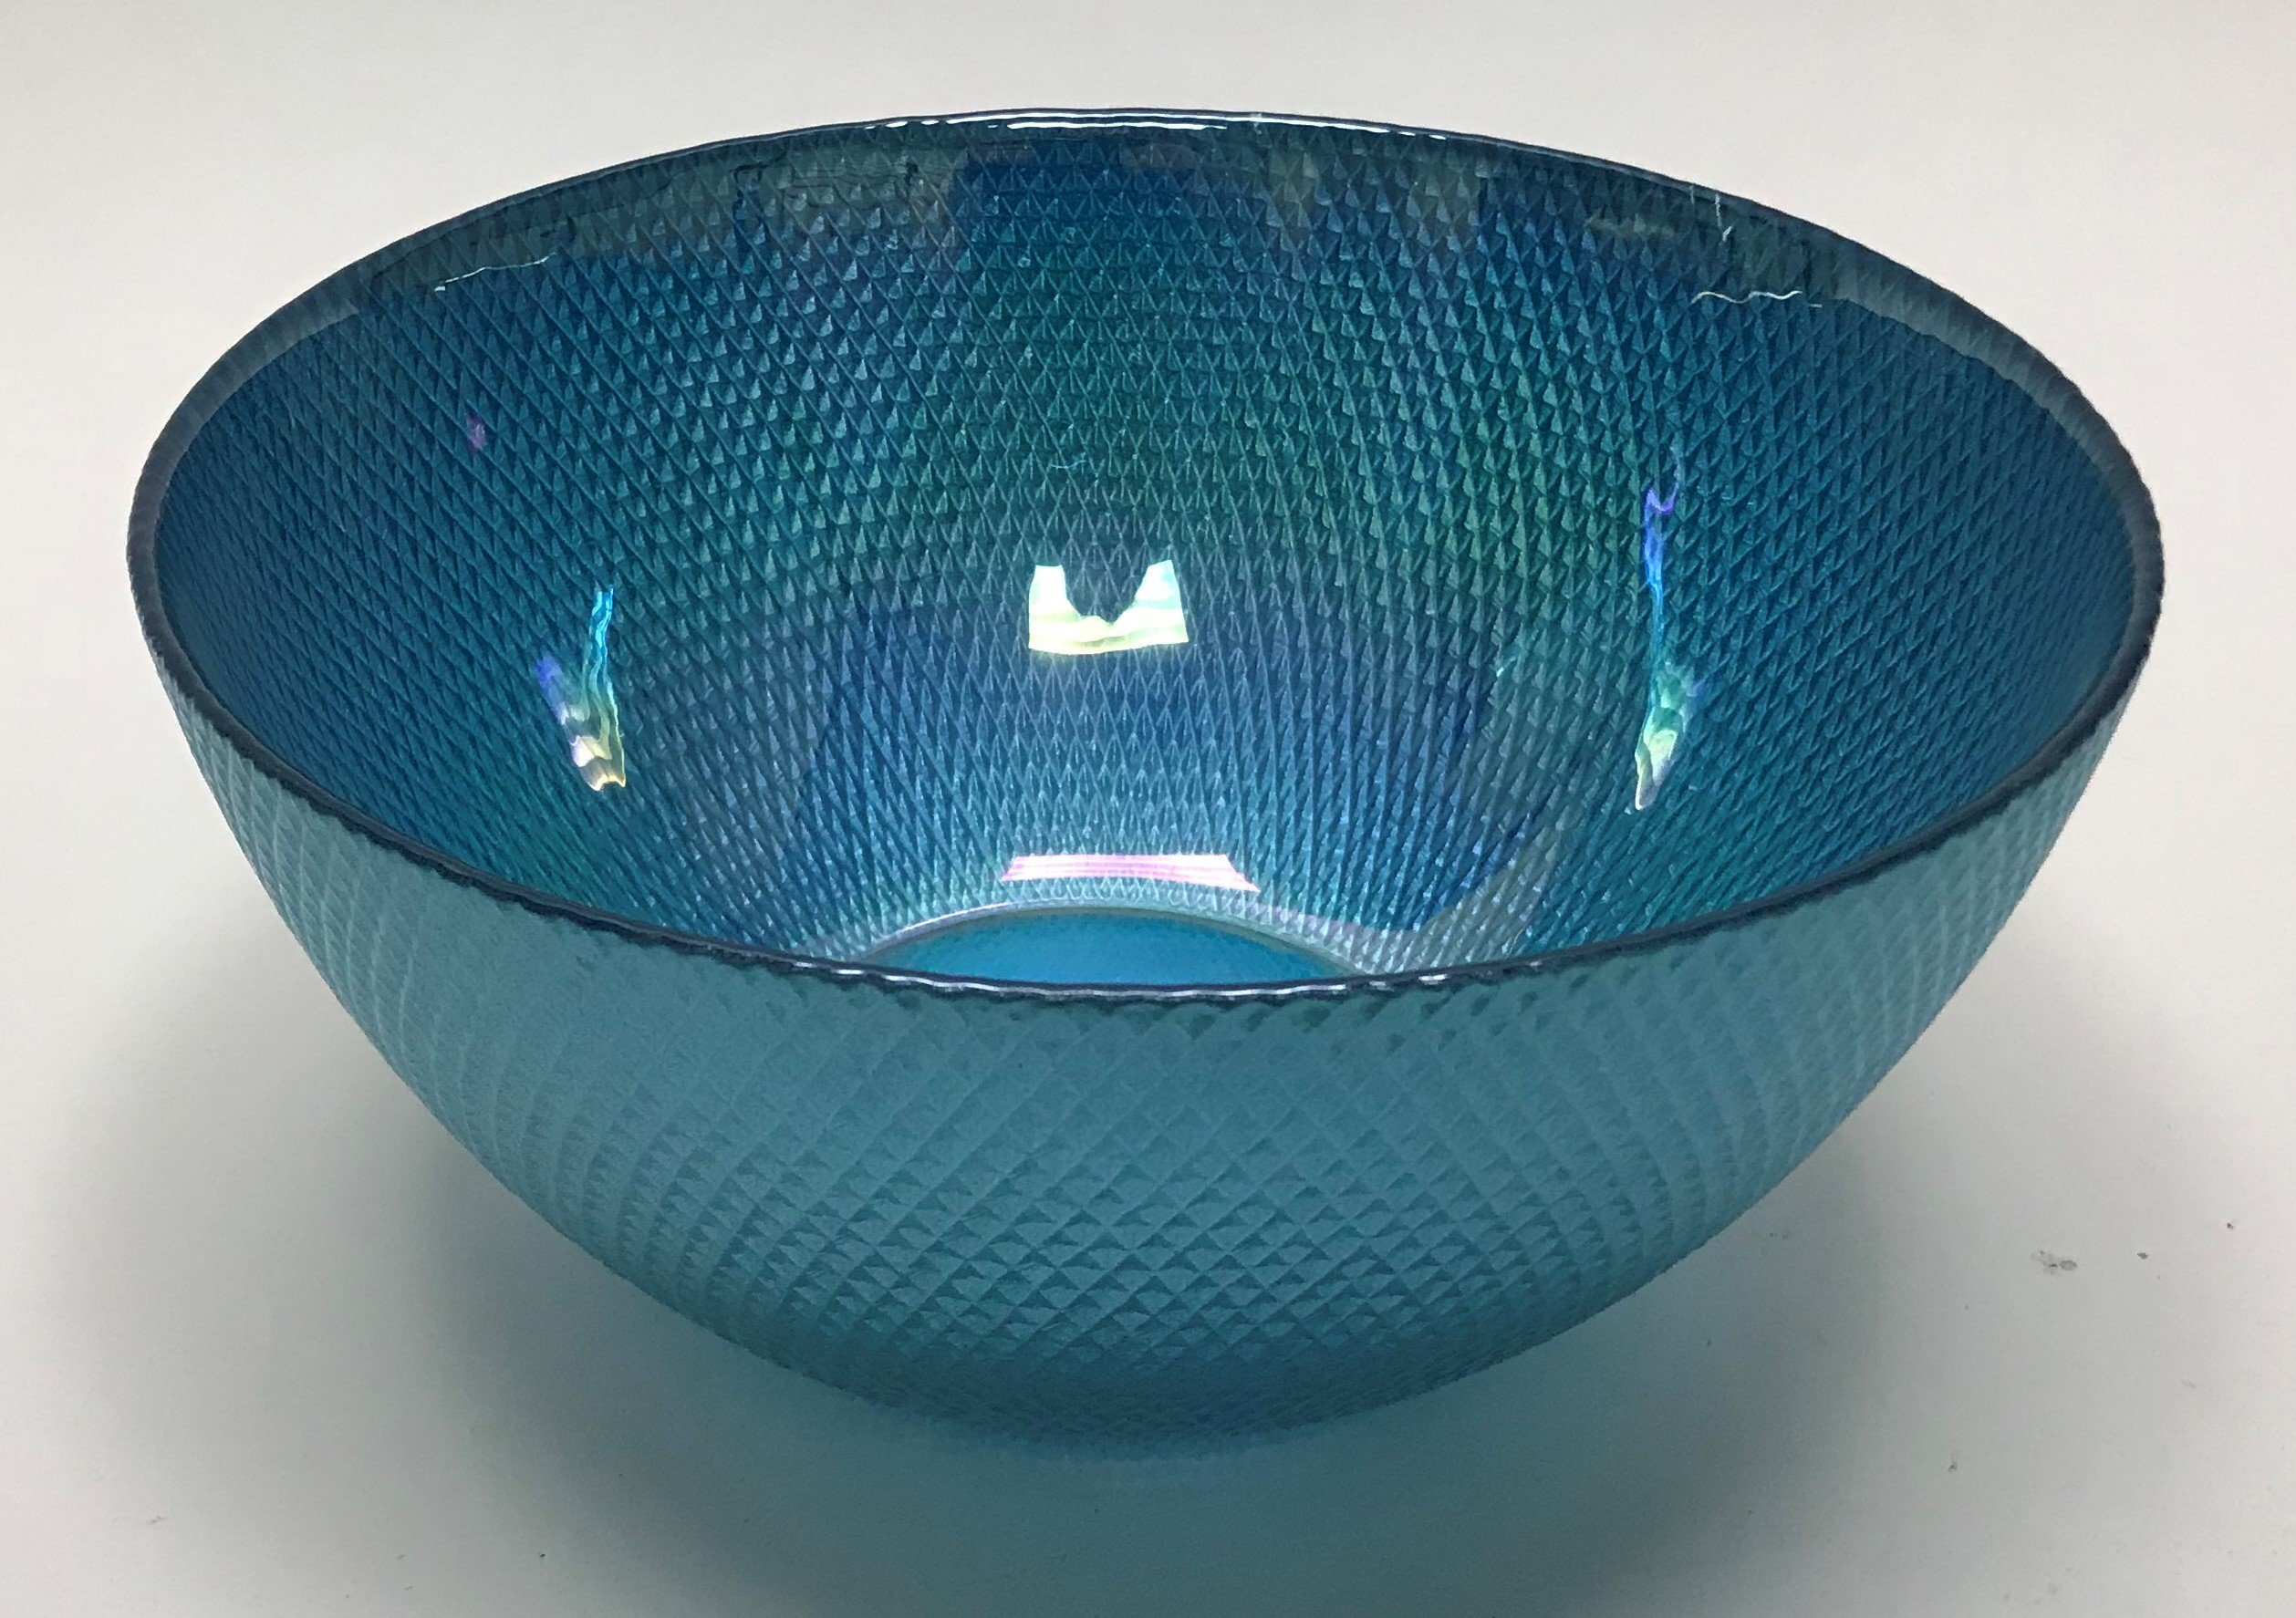 Circleware 03118 Radiance Glass Serving Mixing Fruit Bowl, Glassware for Salad, Punch Beverage, Ice Cream, Dessert, Food and Best Selling Home & Kitchen Decor Gifts, 10'', Aqua Luster